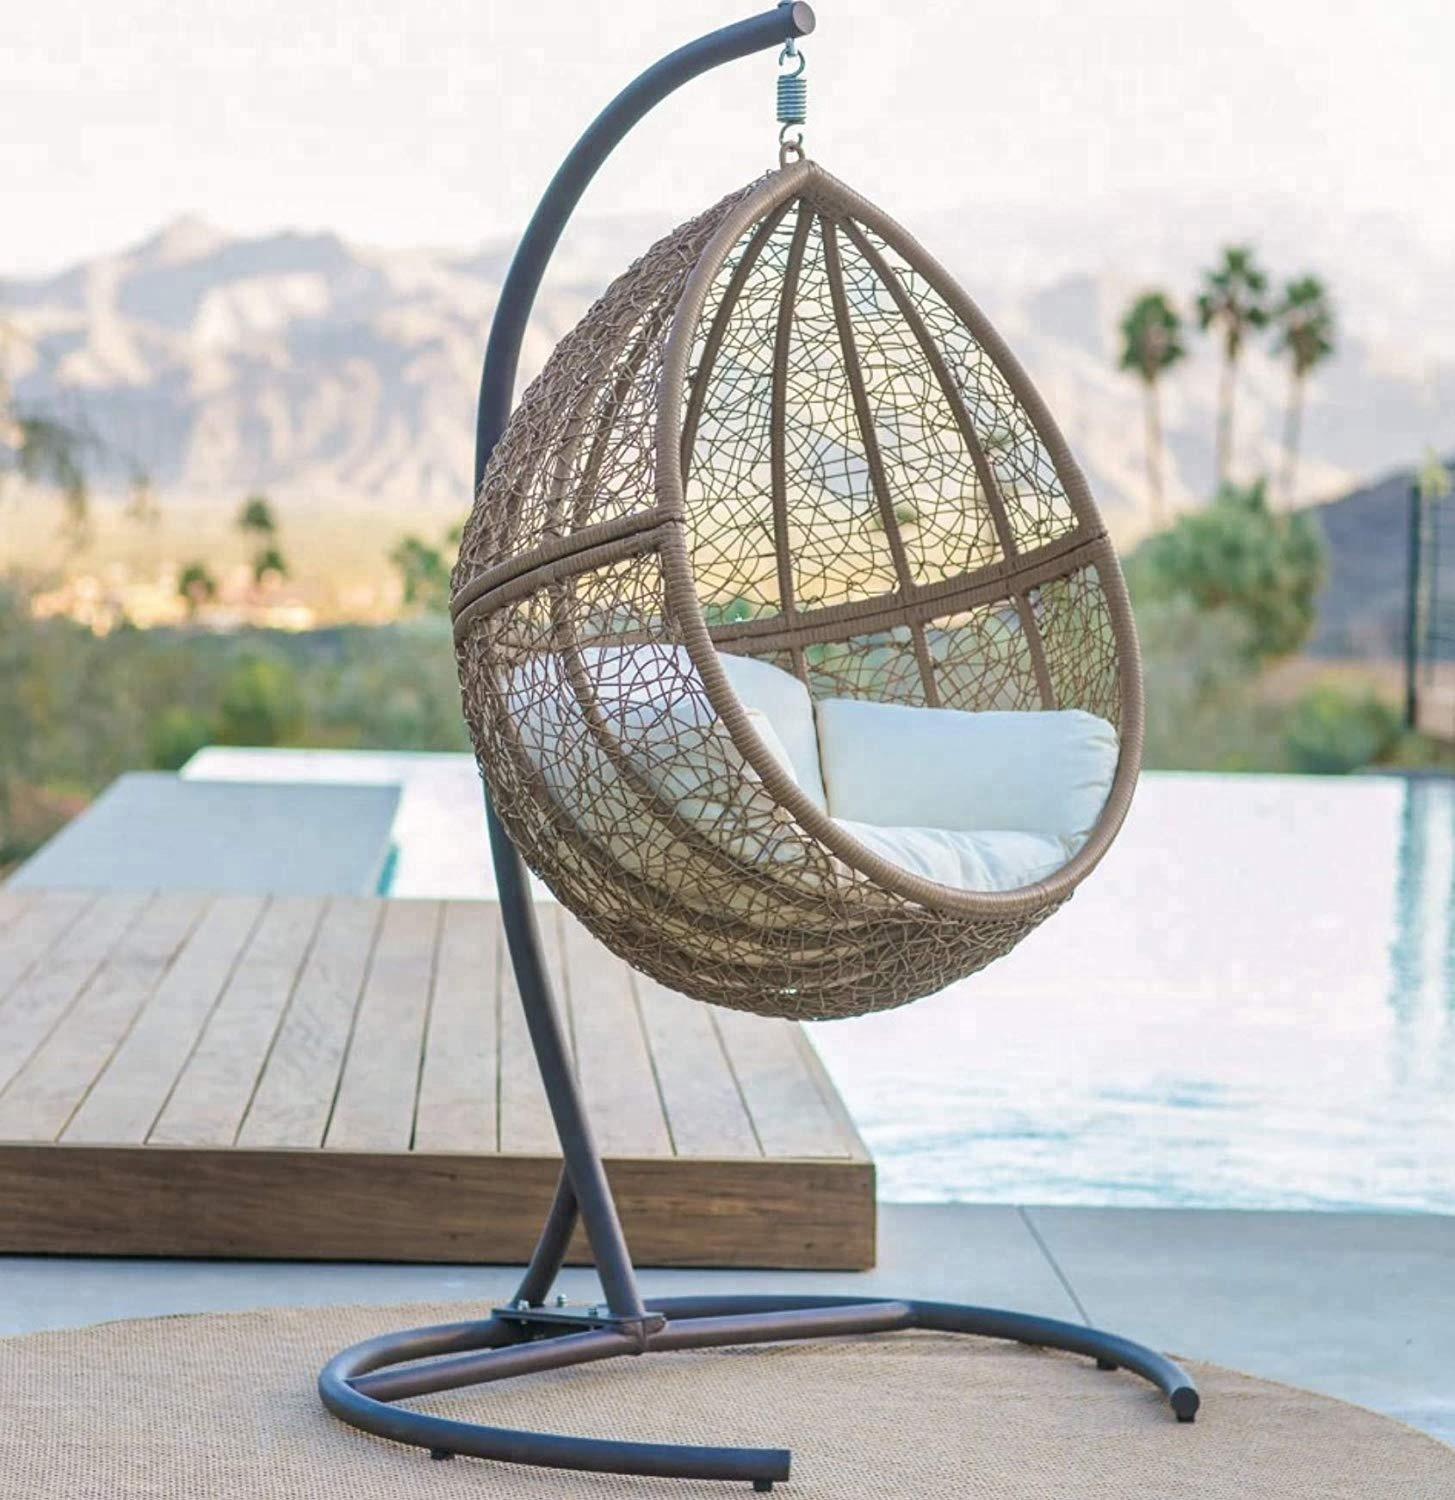 Magnificent Light Brown Resin Wicker Patio Hanging Egg Chair Stand Outdoor Garden Includes Beige Cushion Swing Hanging Chair Buy Patio Hanging Chair Hanging Egg Home Interior And Landscaping Ologienasavecom